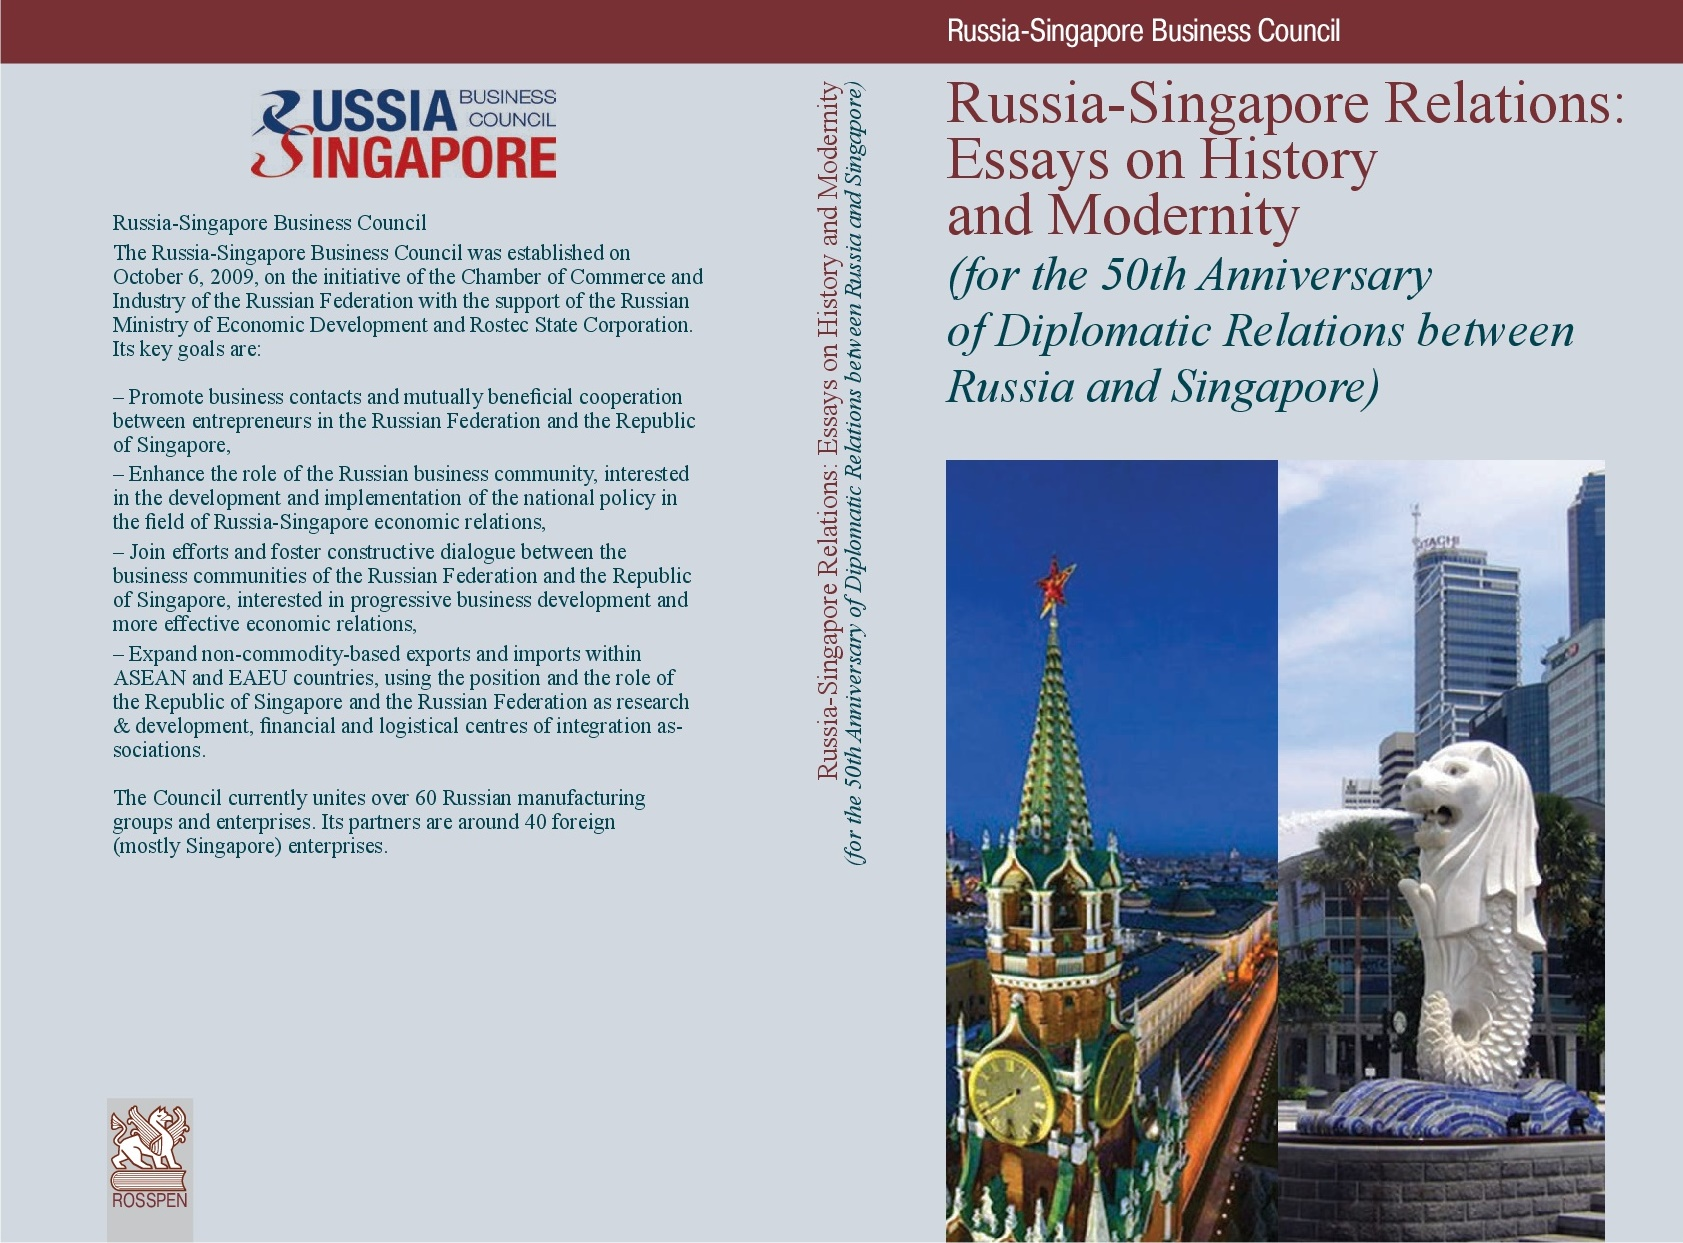 Russia-Singapore Relations: Essays on History and Modernity